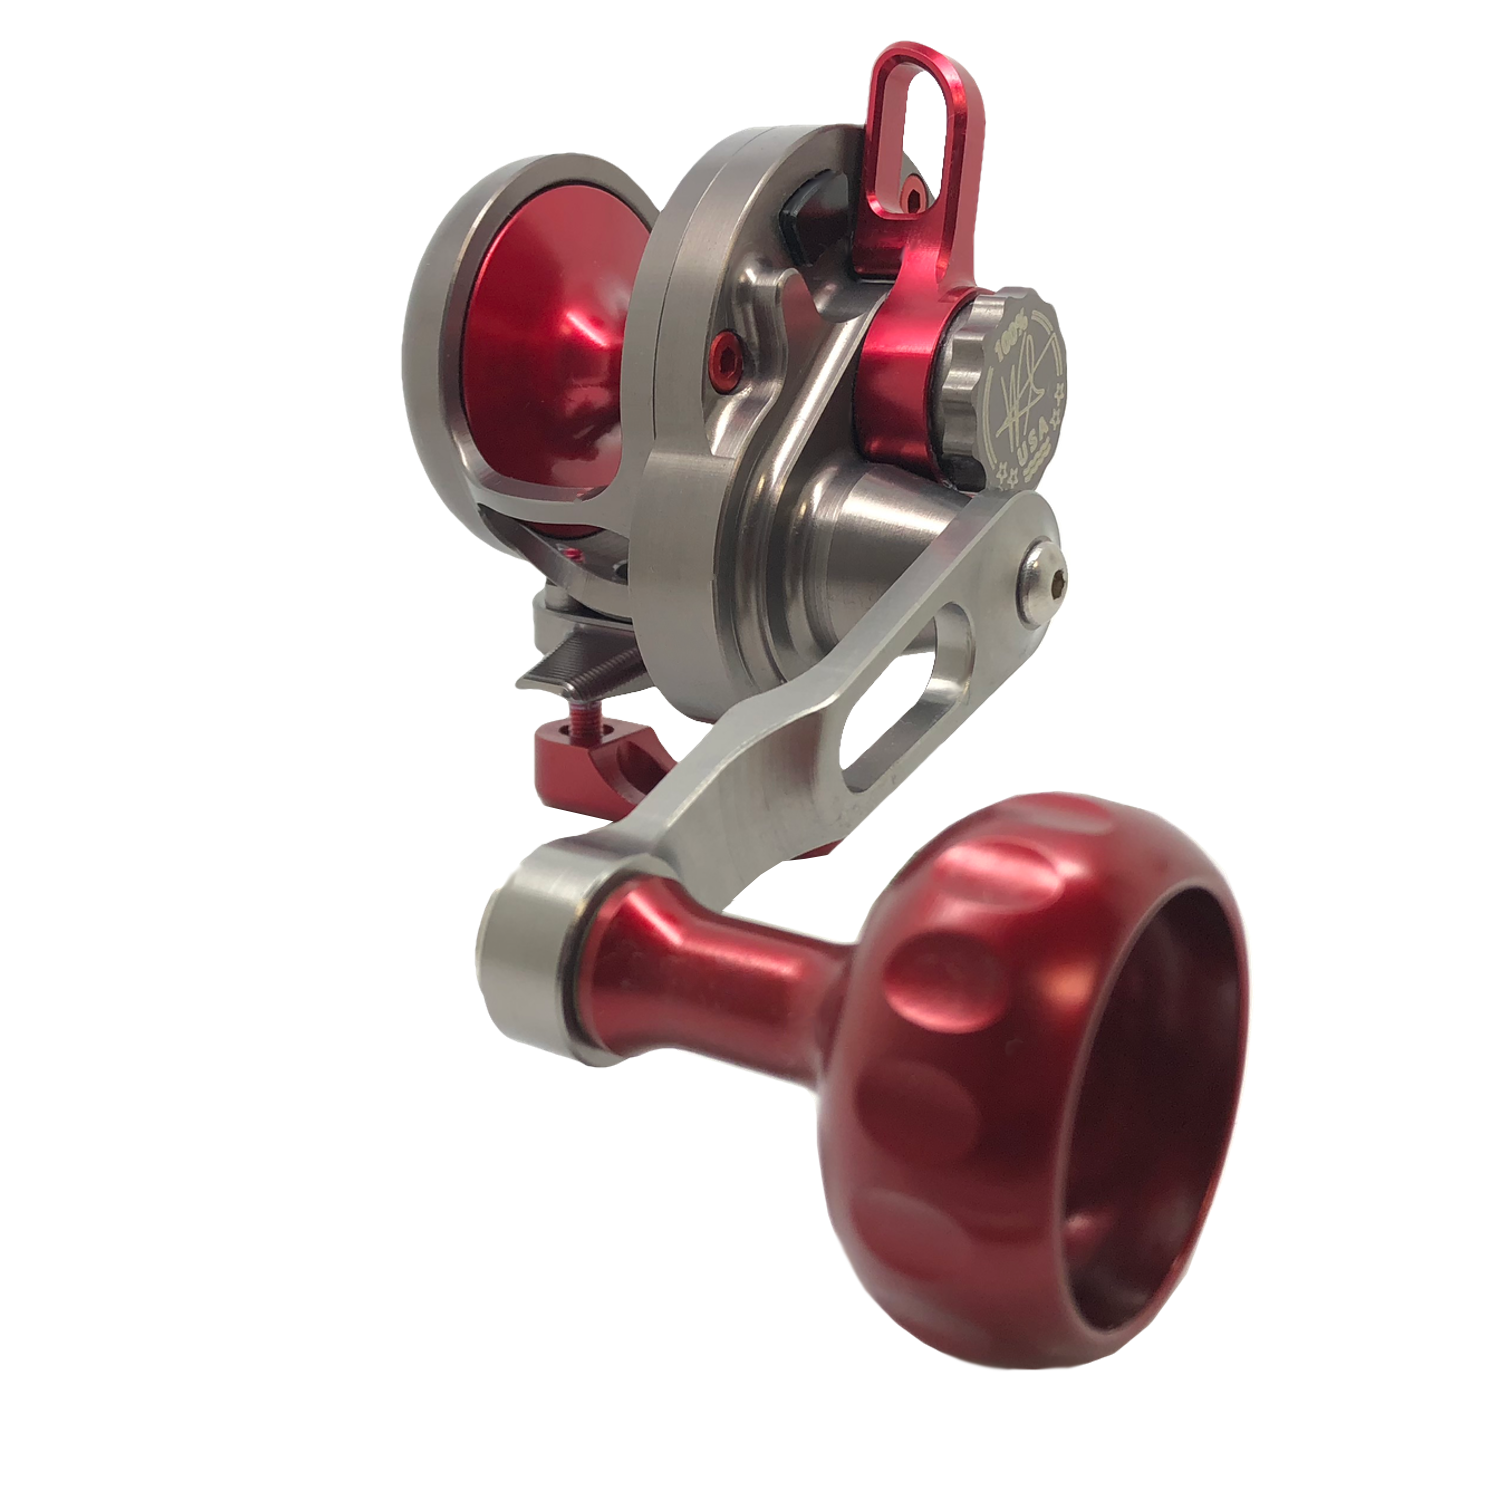 SEIGLER SGN is a Leader in the inshore lever drag reel class. Provides more drag and power than any other reel in its class. Plus it is made in Virginia!